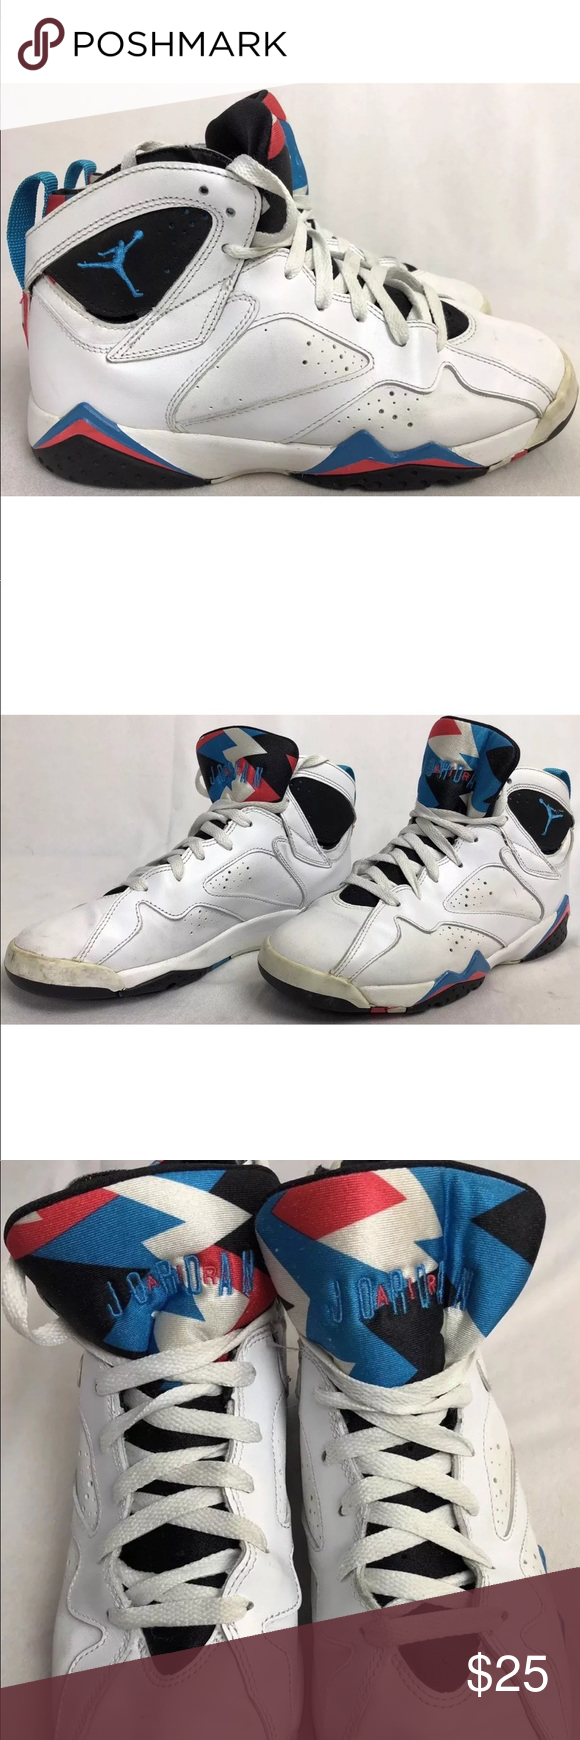 0033717159db12 Nike Air Jordan 7 VII Womens 8.5 or youth 7 shoes You are buying a pair  Nike Air Jordan 7 VIII Youth Shoes Color White Black Blue Pink Size 7 Youth  or ...